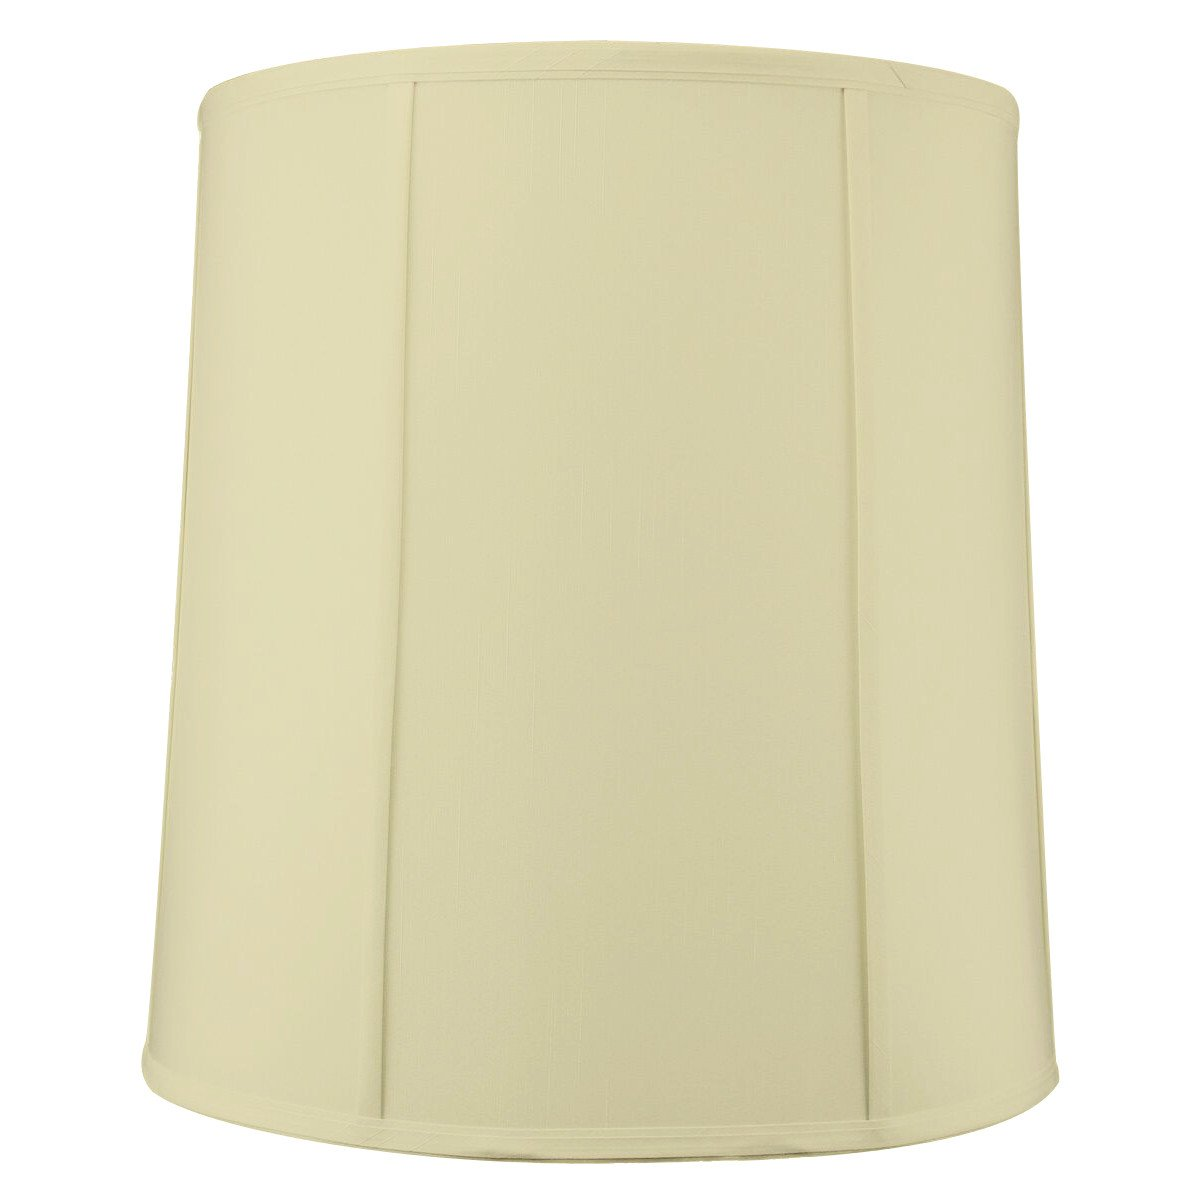 HomeConcept 141617DRES Egg Shell Shantung Drum Lampshade with Brass Spider Fitter by Home Concept, 14'' x 16'' x 17'' by HomeConcept